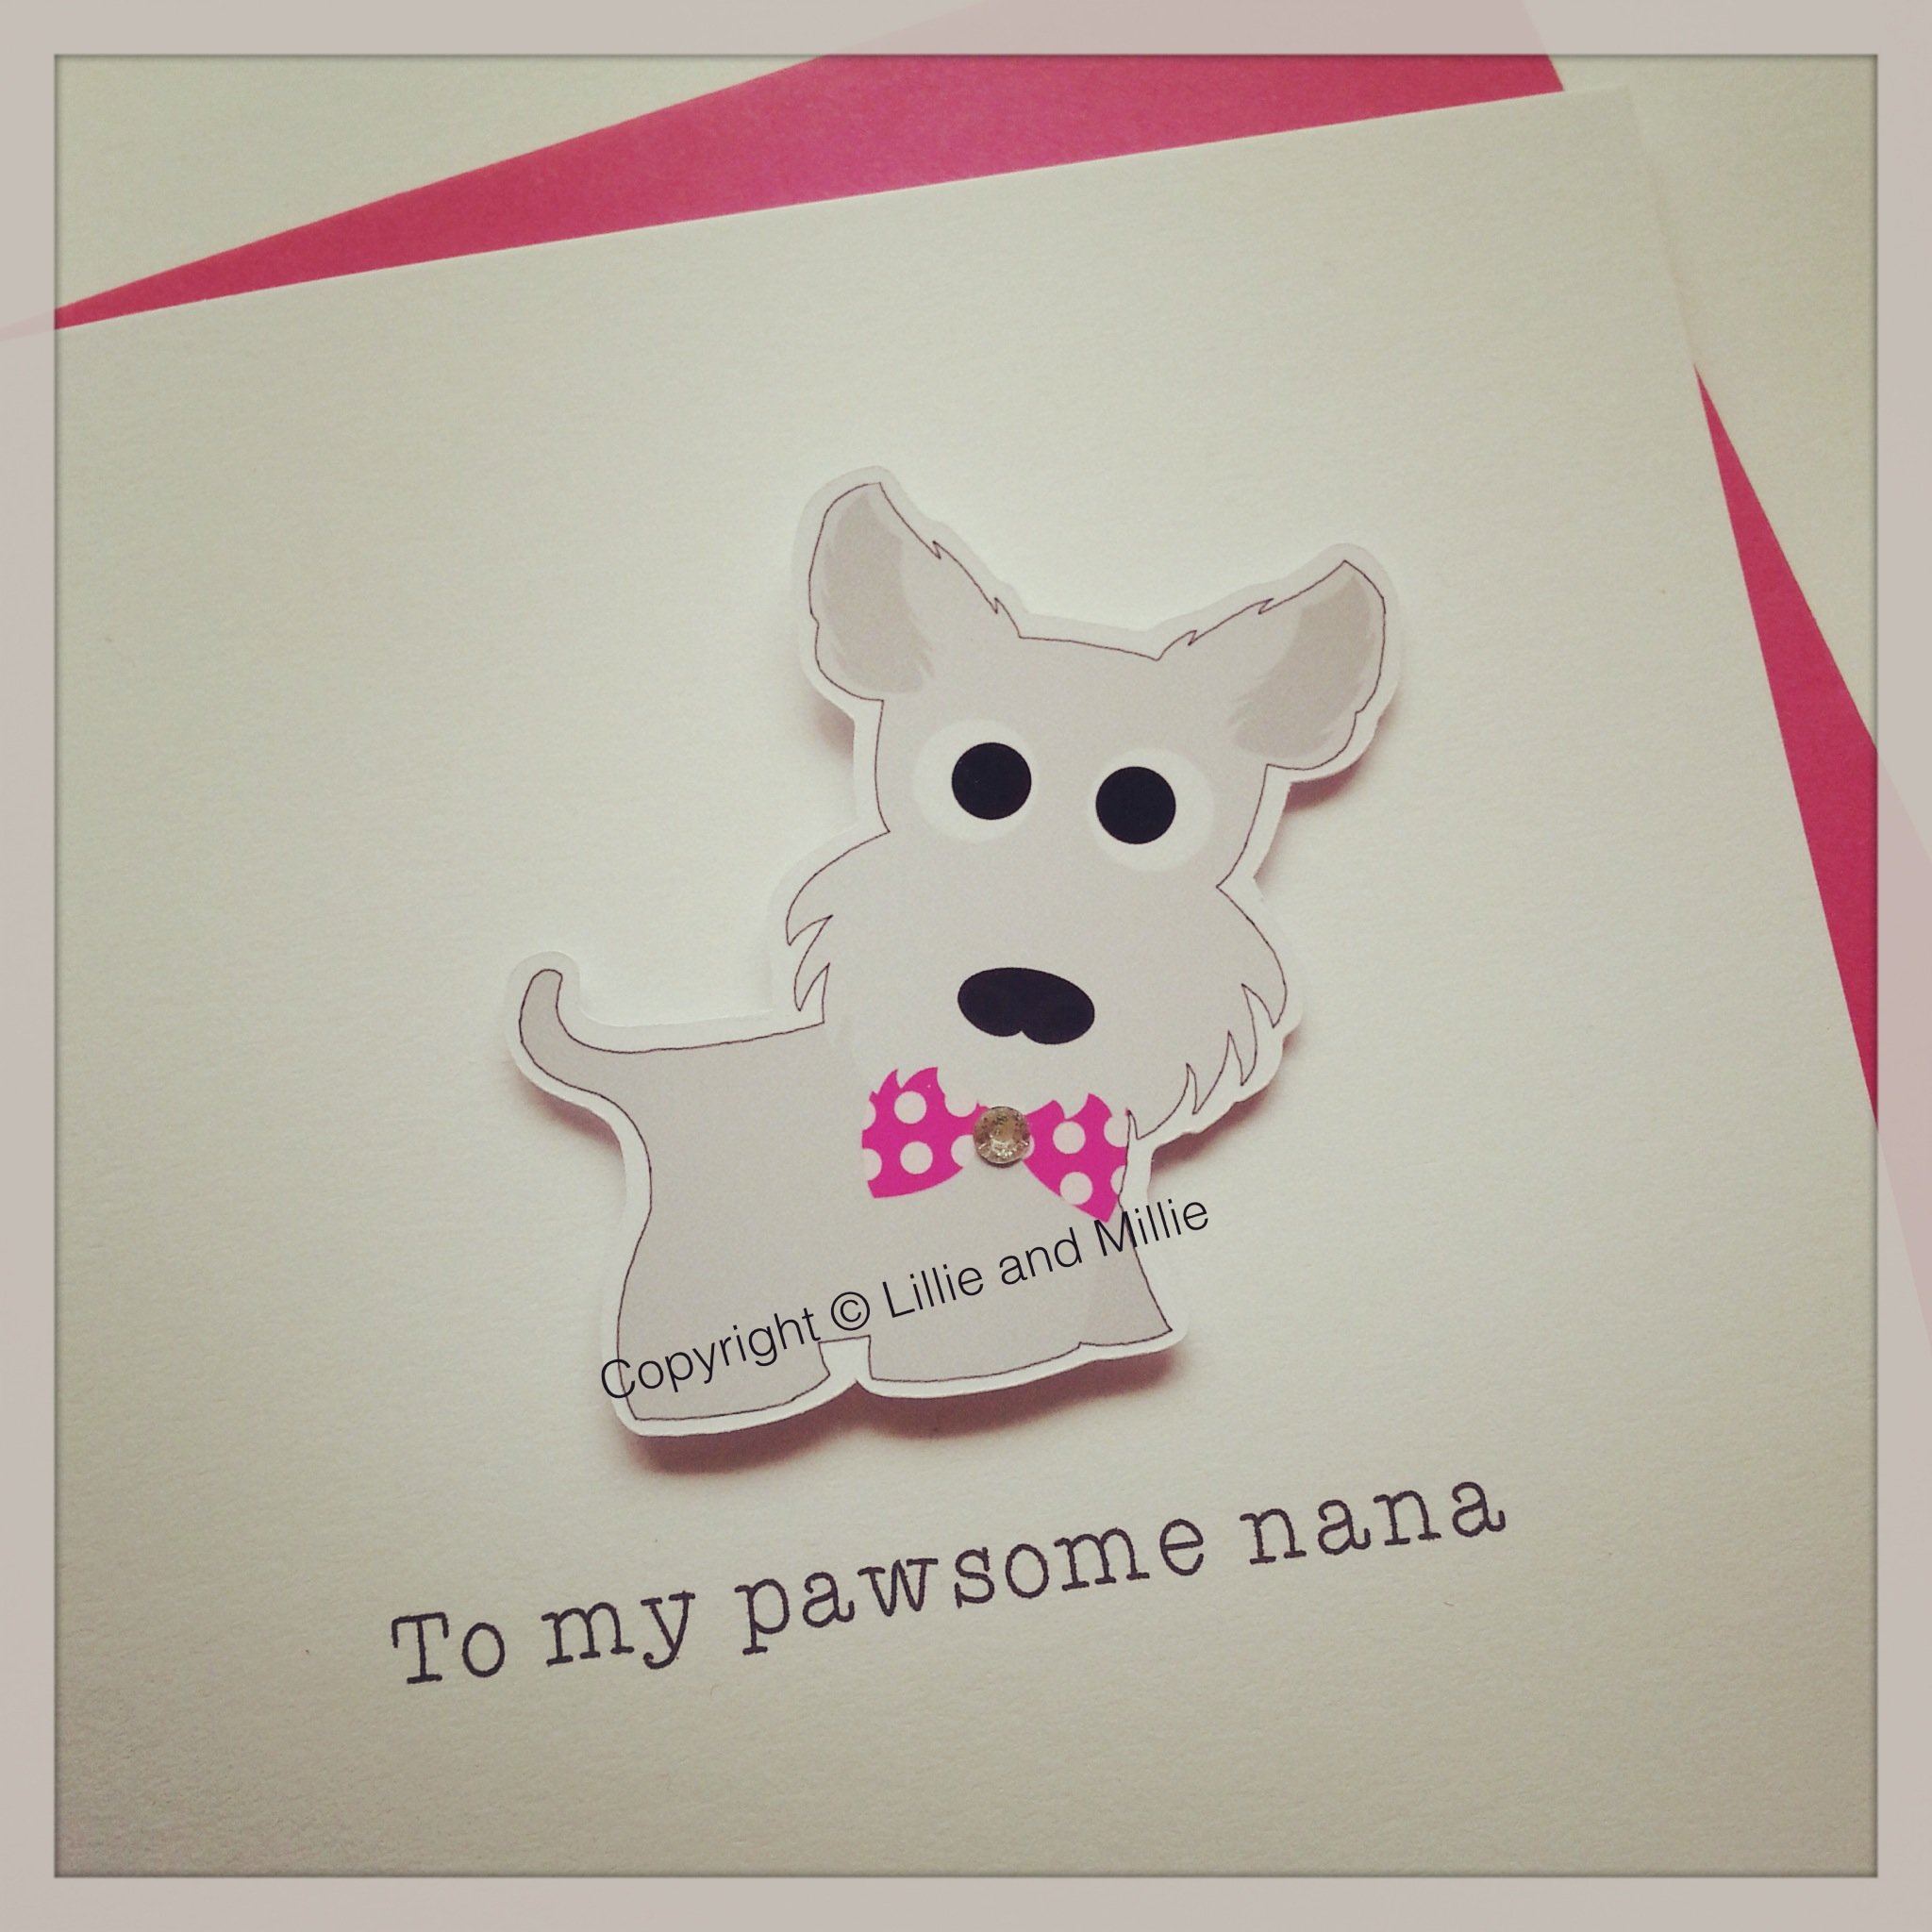 Westie Weshighland Terrier Dog Greetings Card